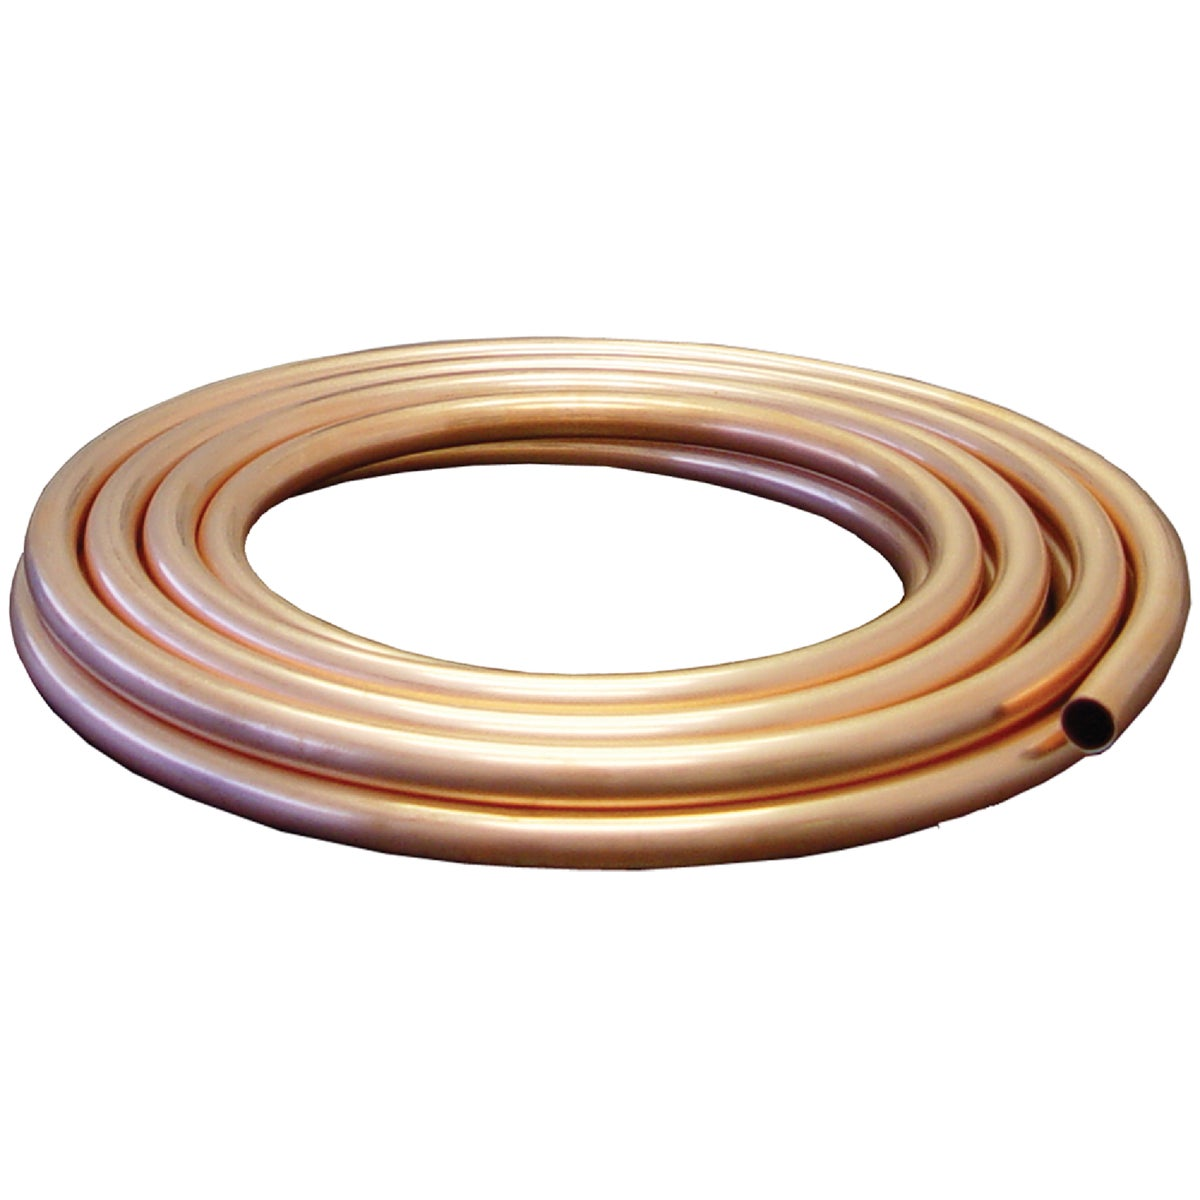 "1/2""ODX10'UG COPPER COIL - UT08010 by Mueller B K"